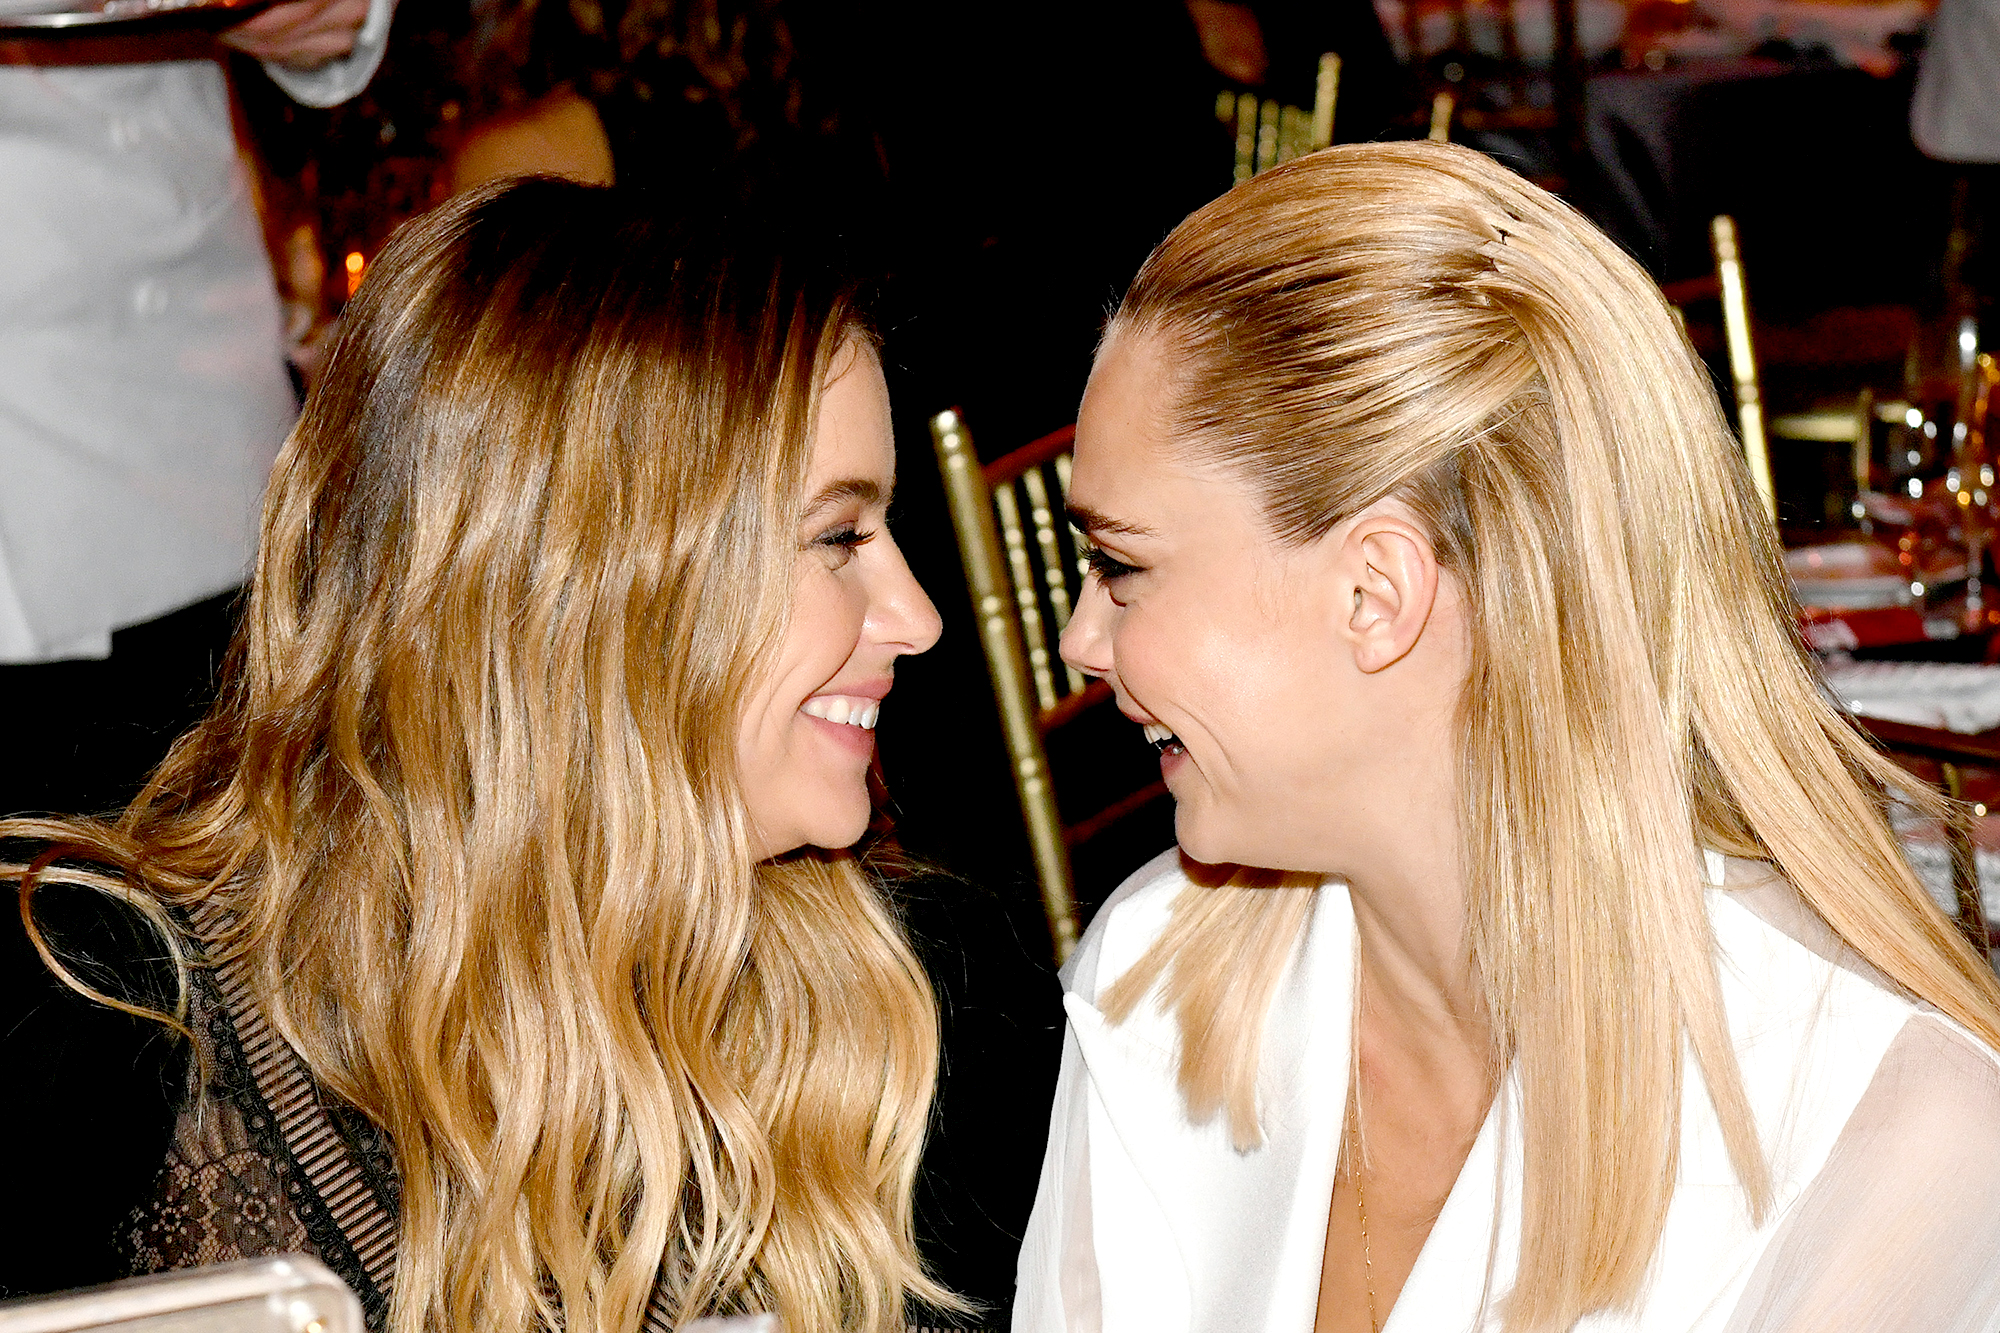 Ashley Benson And Cara Delevingne Are Madly Madly In Love